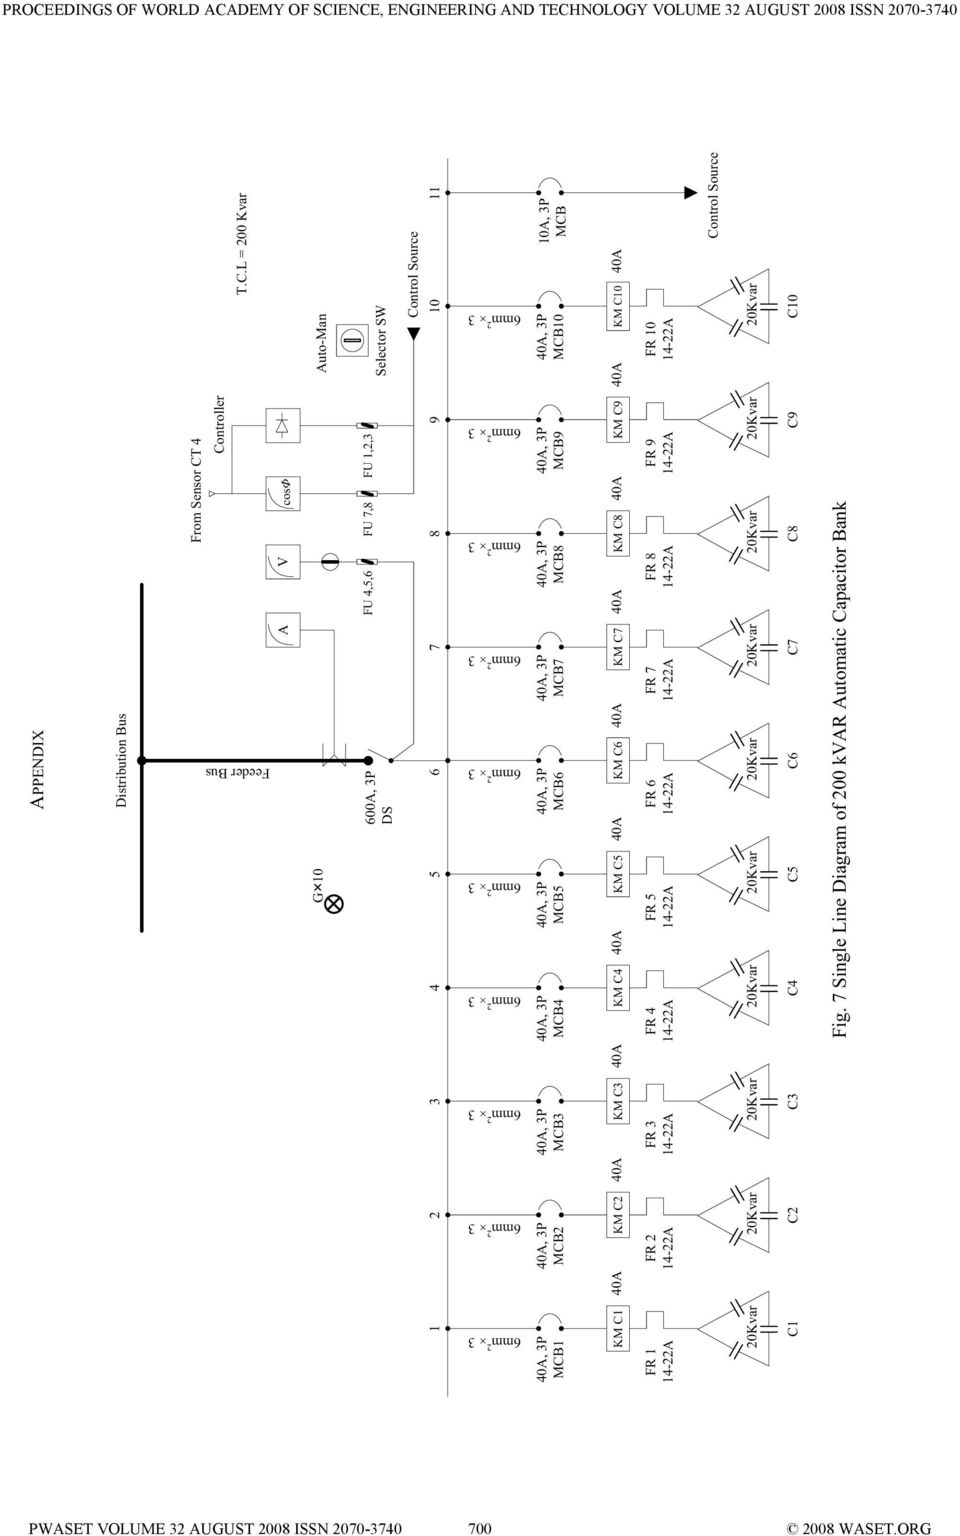 Improvement Of Power Factor For Industrial Plant With Automatic Gcse Physics How Does A Circuit Breaker Work What Is An Mcb Mcb3 Mcb4 Mcb5 Mcb6 Mcb7 Mcb8 Mcb9 Mcb10 10a 3p Km C1 40a